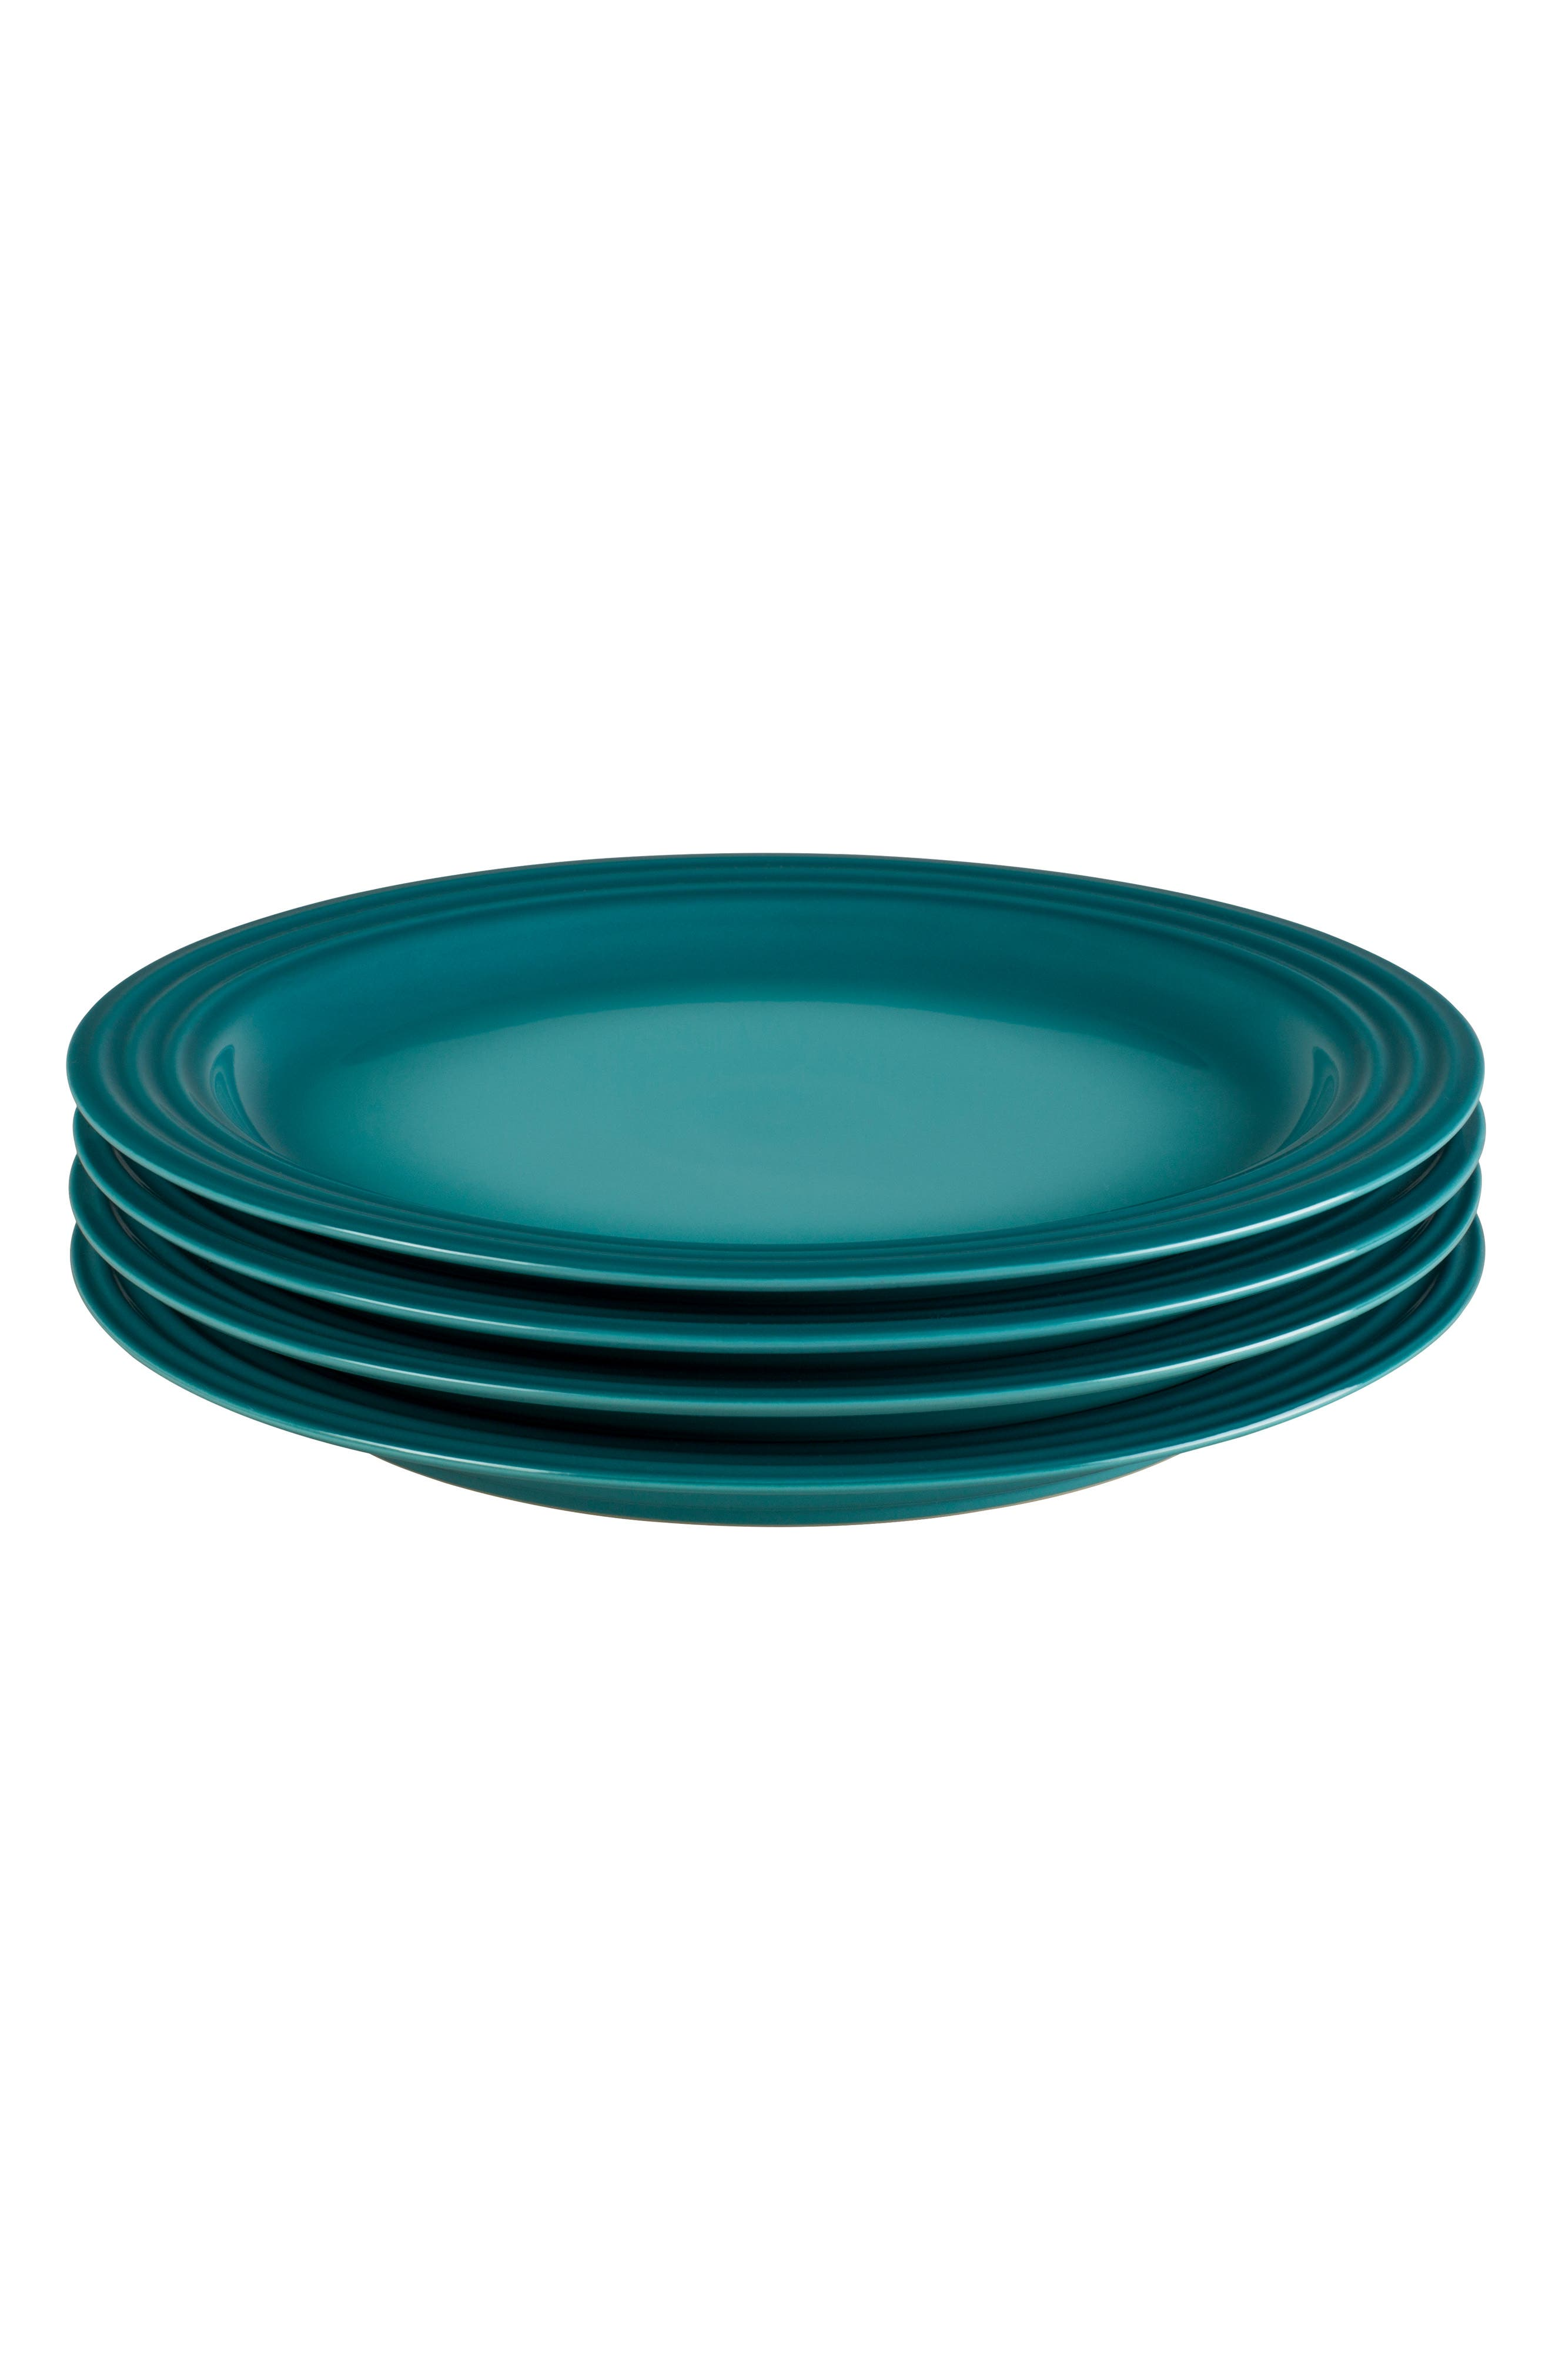 Le Creuset Set Of 4 10 12Inch Dinner Plates Size One Size  Bluegreen